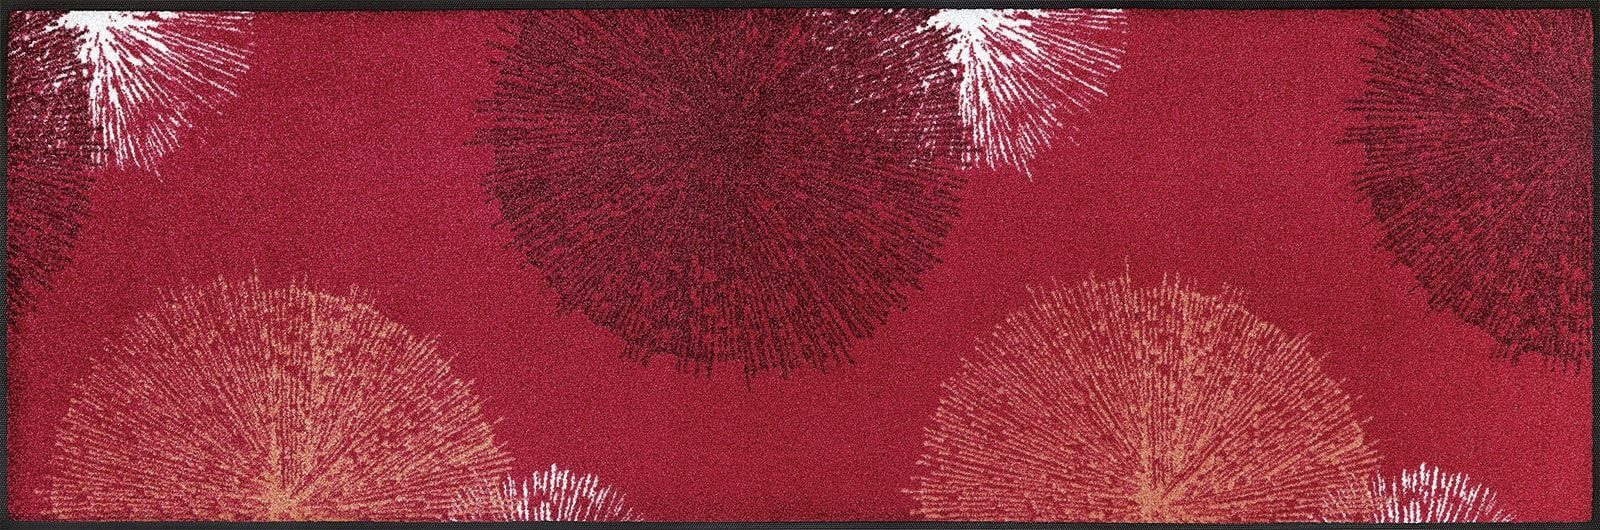 Коврик для дома wash+dry Firework red 60x180